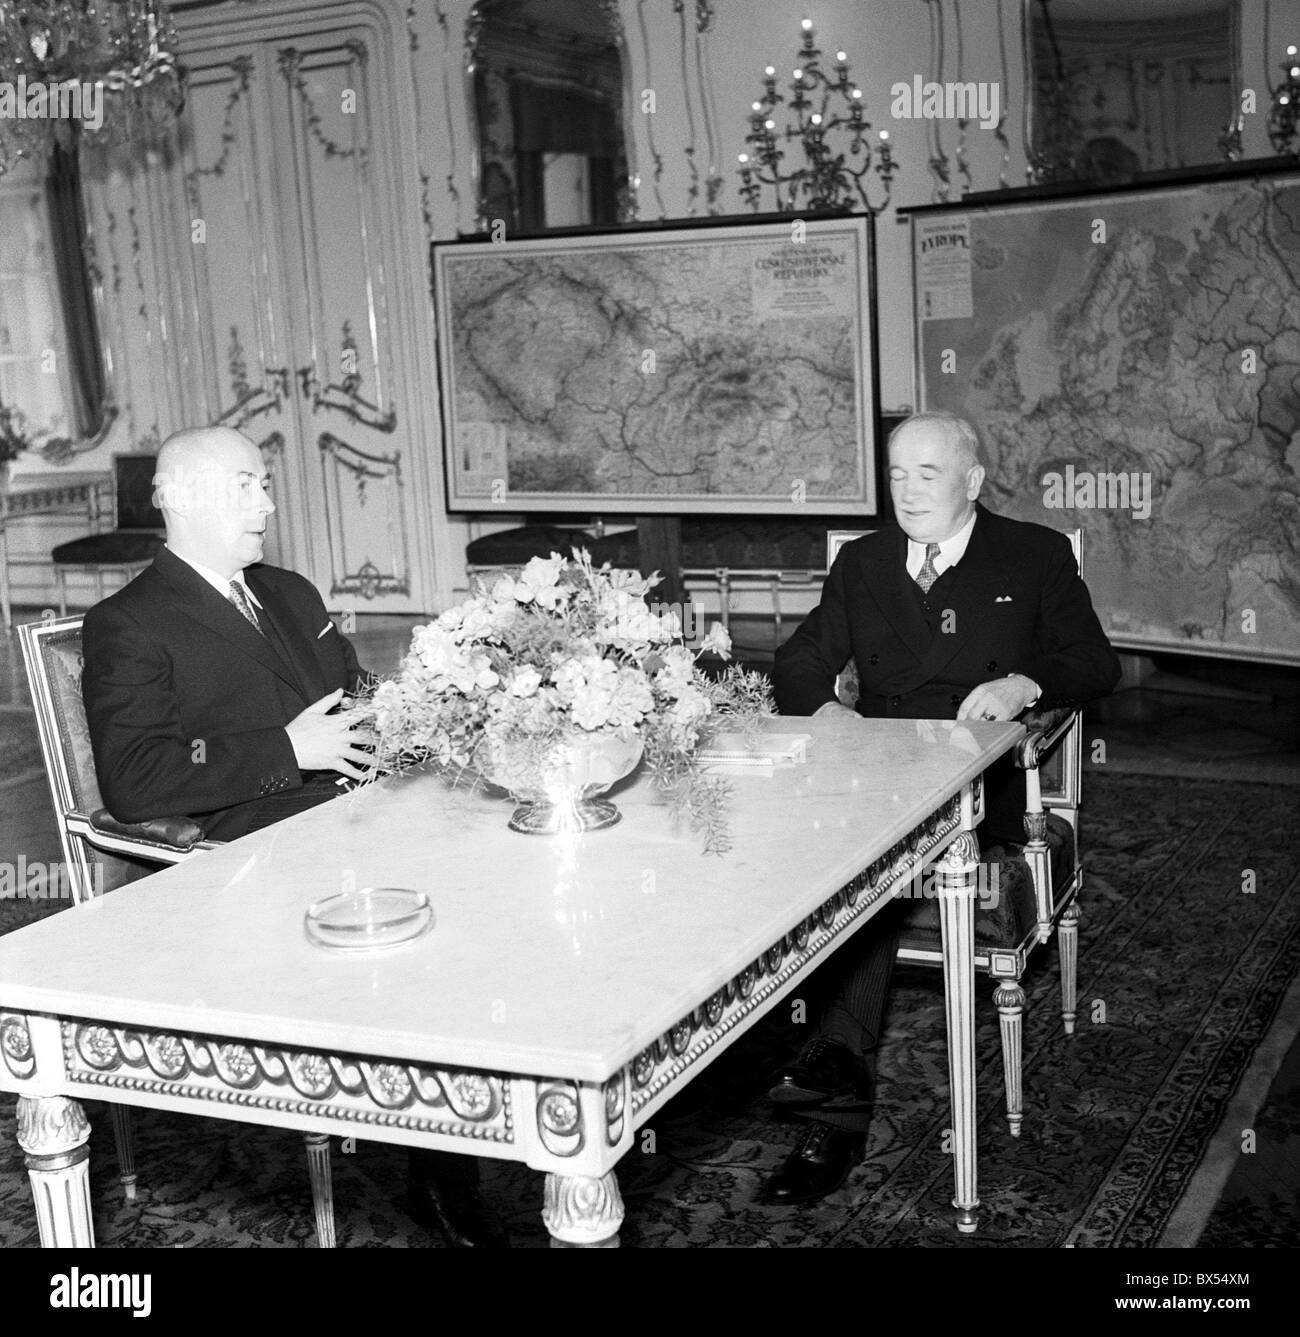 Prime Minister of Poland Jozef Cyrnakiewicz left and Czechoslovak President Edvard Benes during the meeting at the - Stock Image